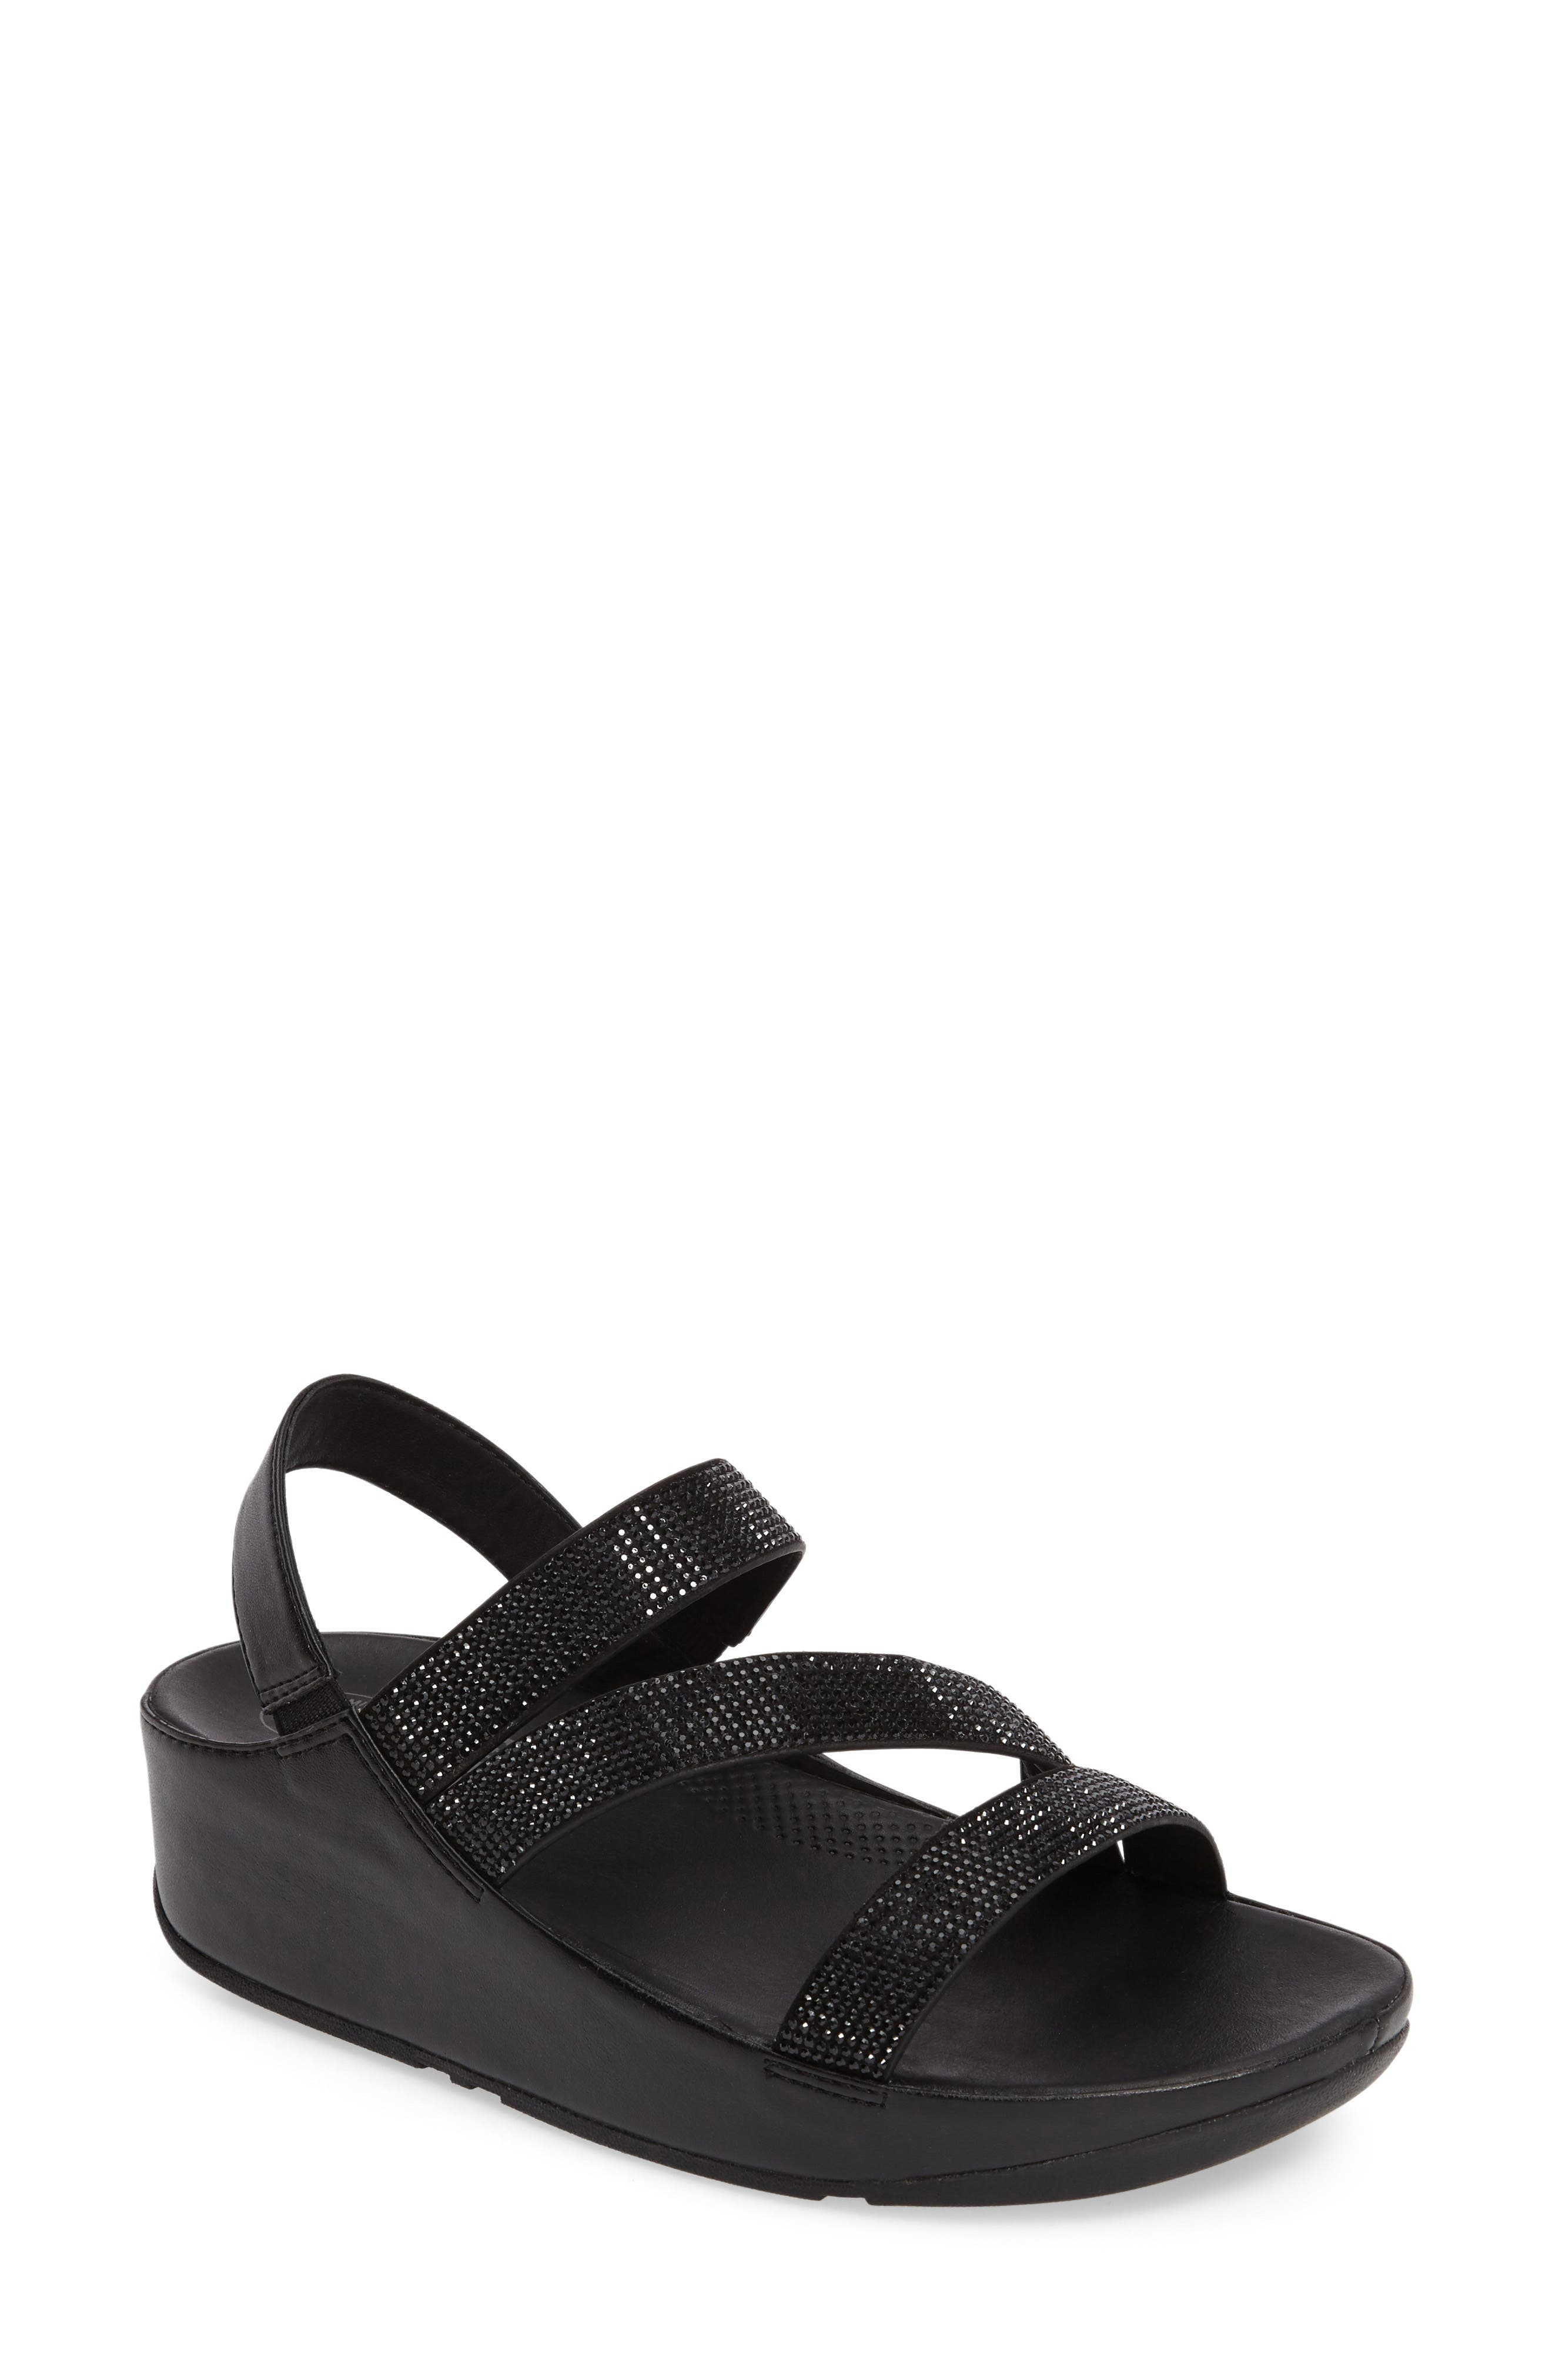 FITFLOP  Crystall Wedge Sandal, Main, color, 001